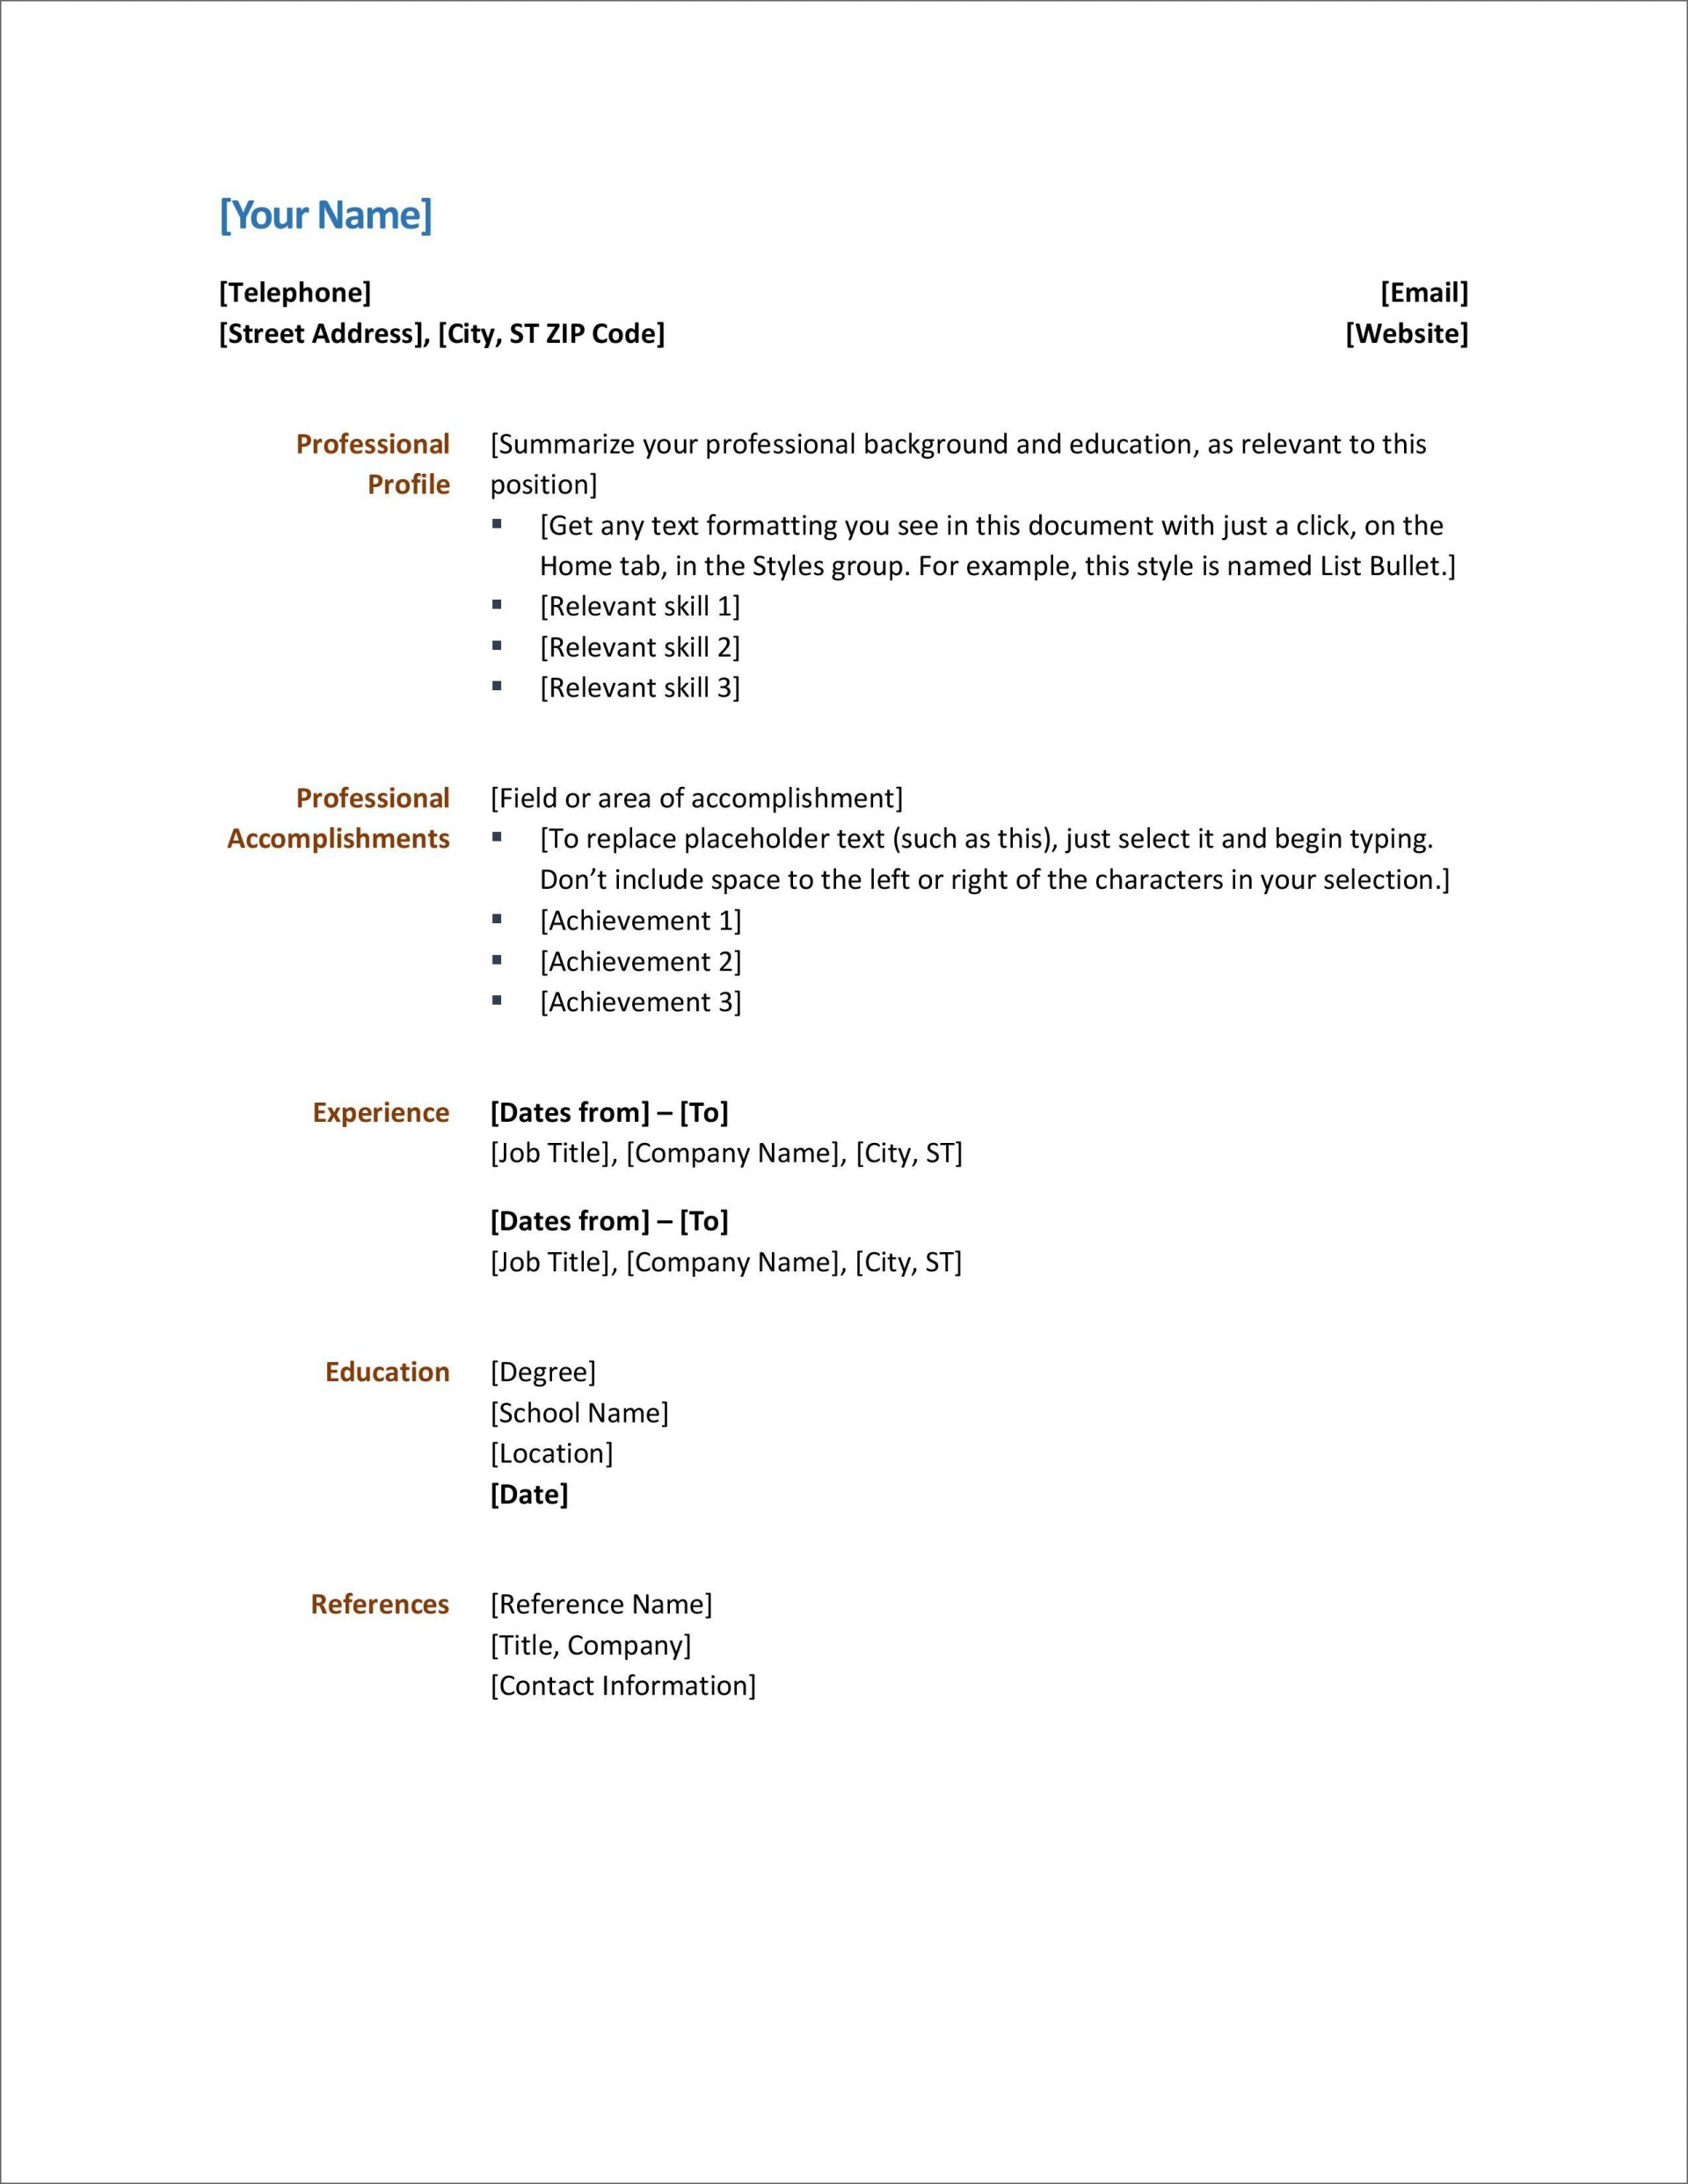 006 Stunning Resume Format Example Free Download High Def 1920